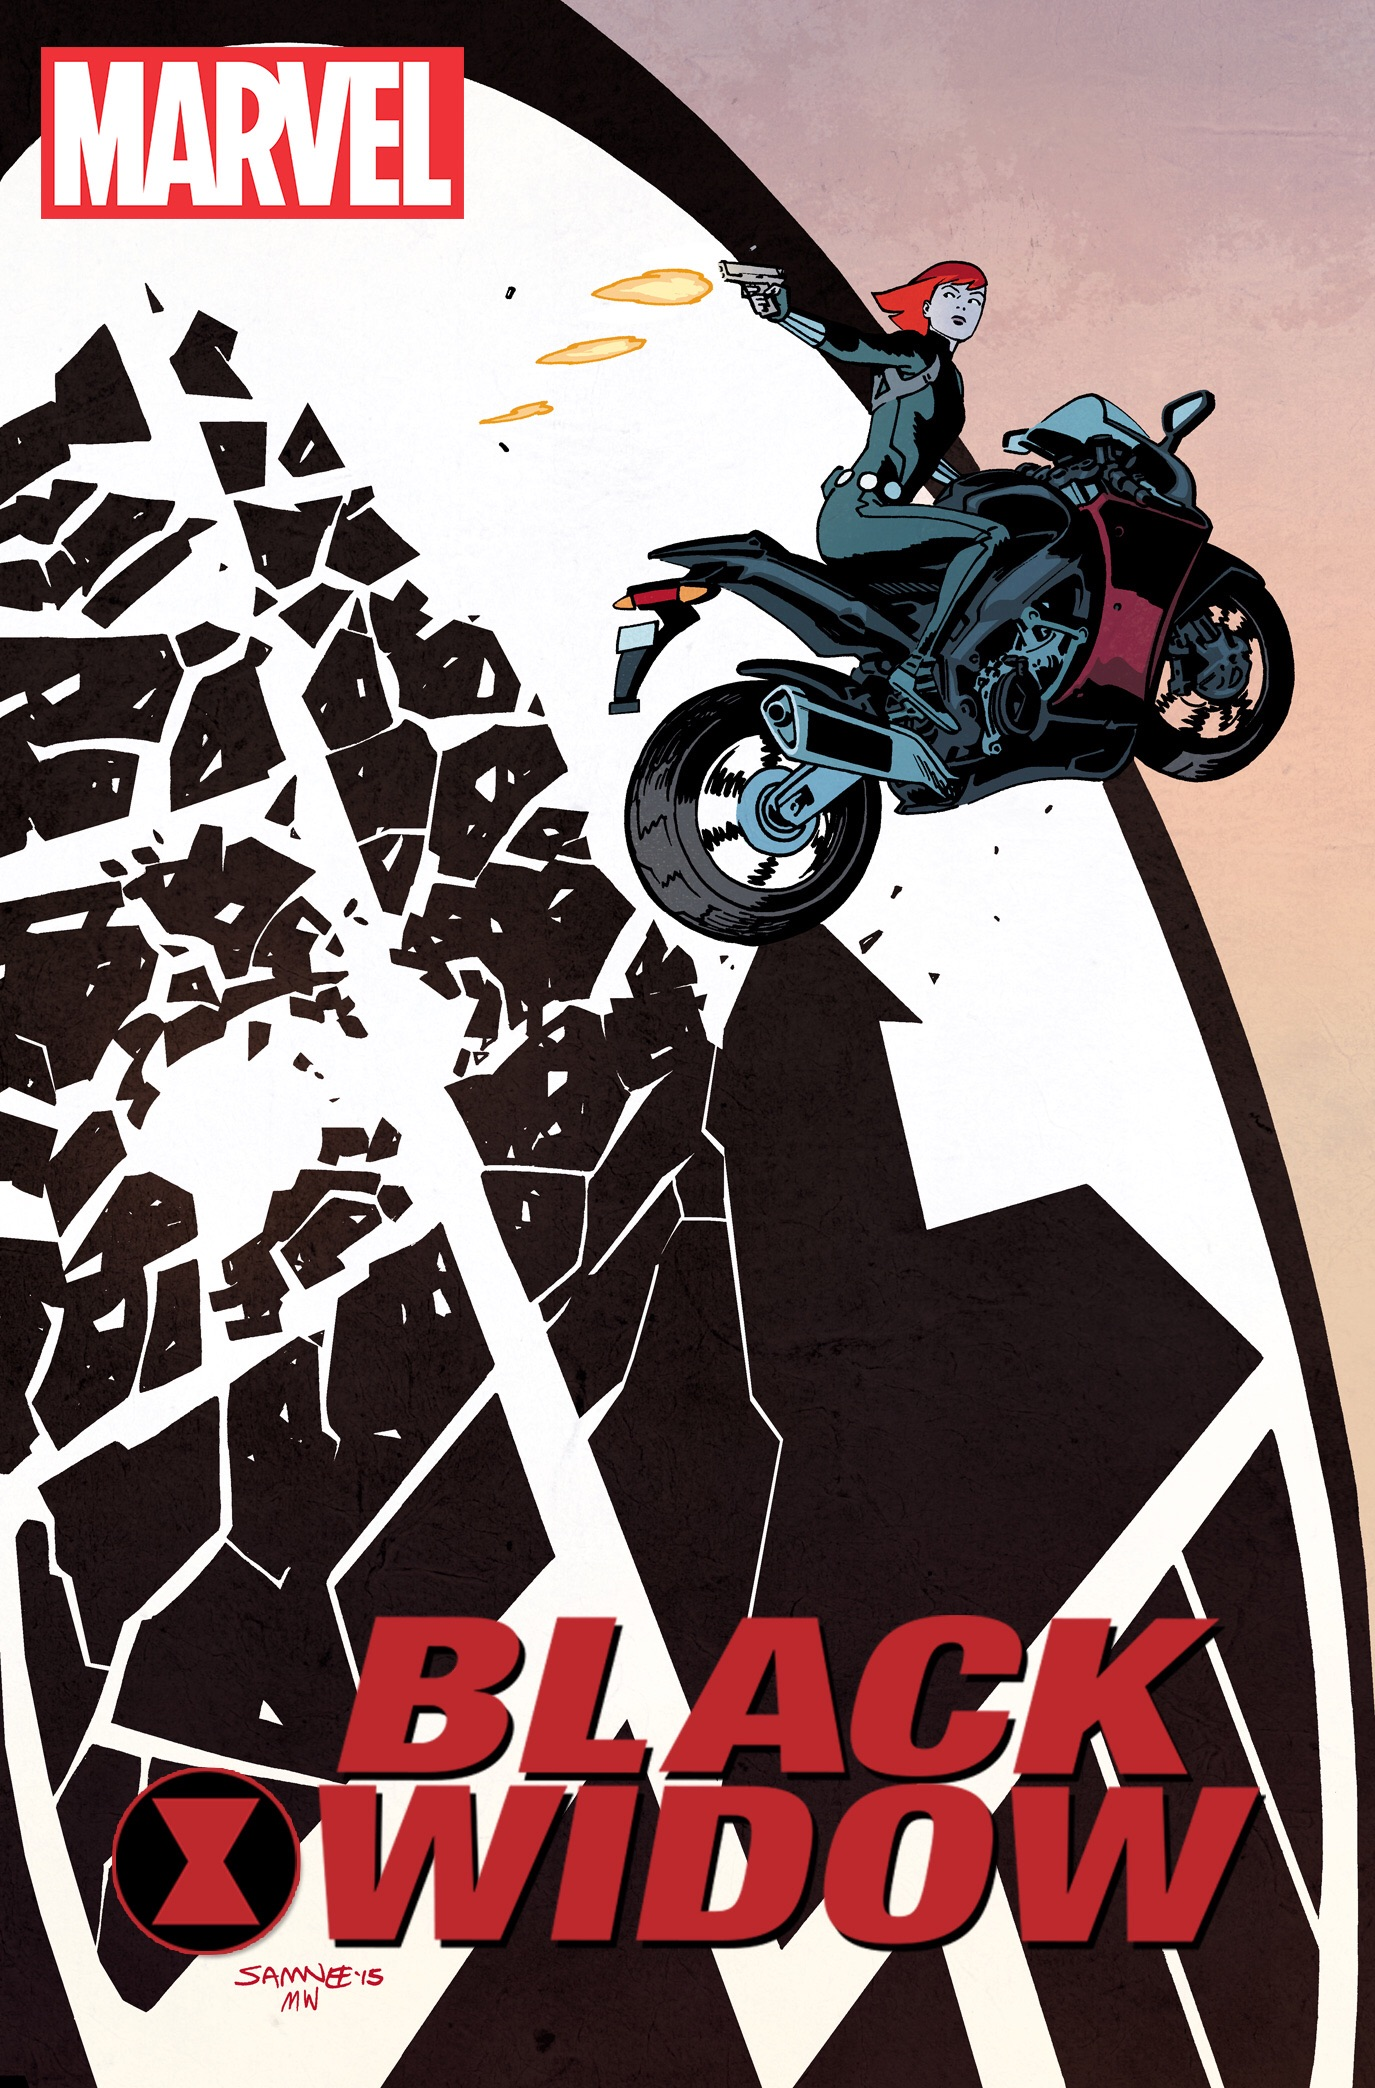 BLACK WIDOW #1 – From The Eisner Award Winning Team Behind DAREDEVIL!